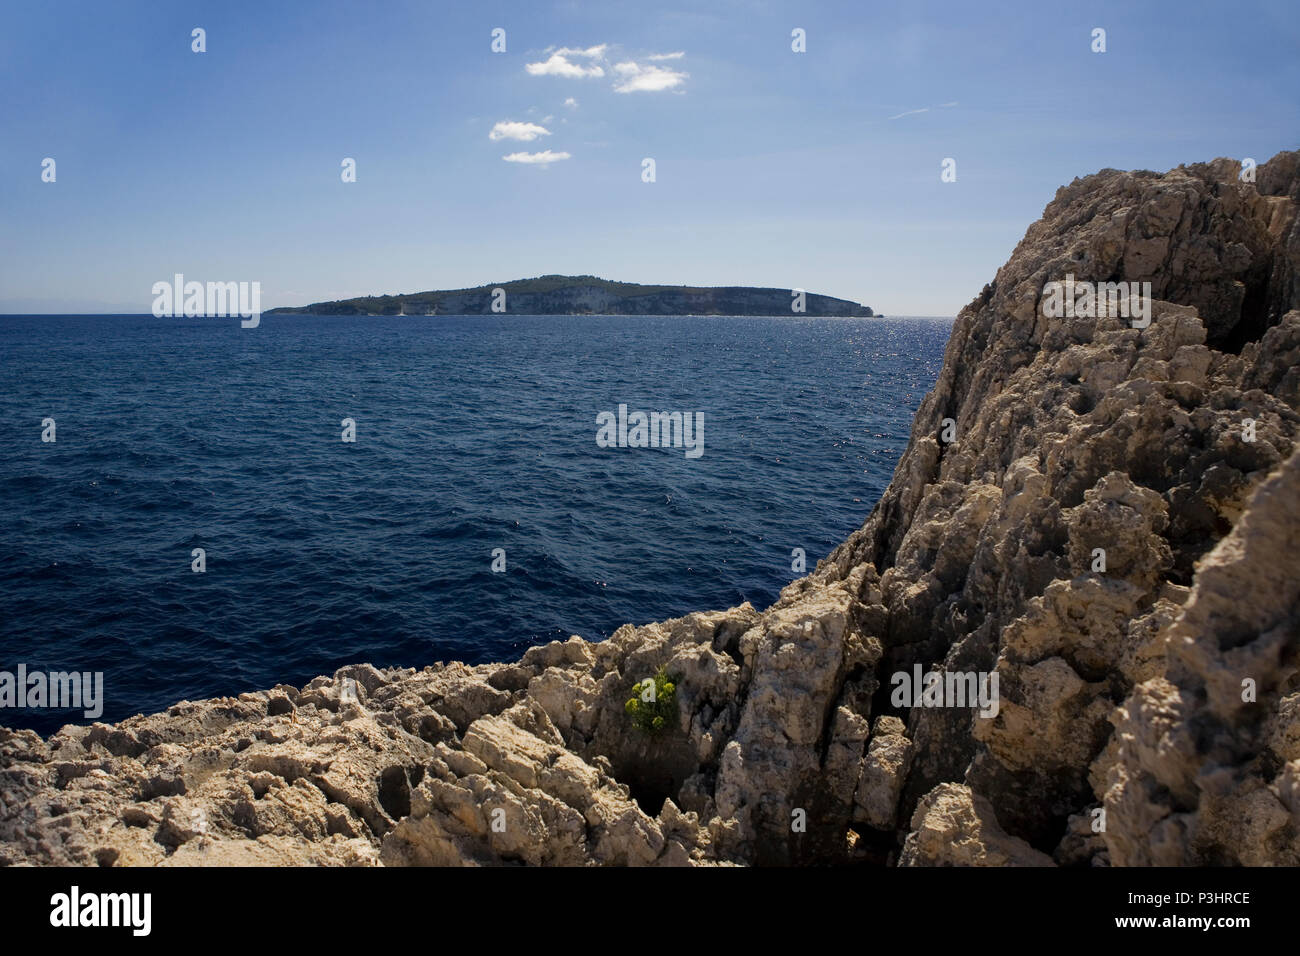 Looking south from Moggonissi, at the southern tip of Paxos to the island of Antipaxos, Greece - Stock Image